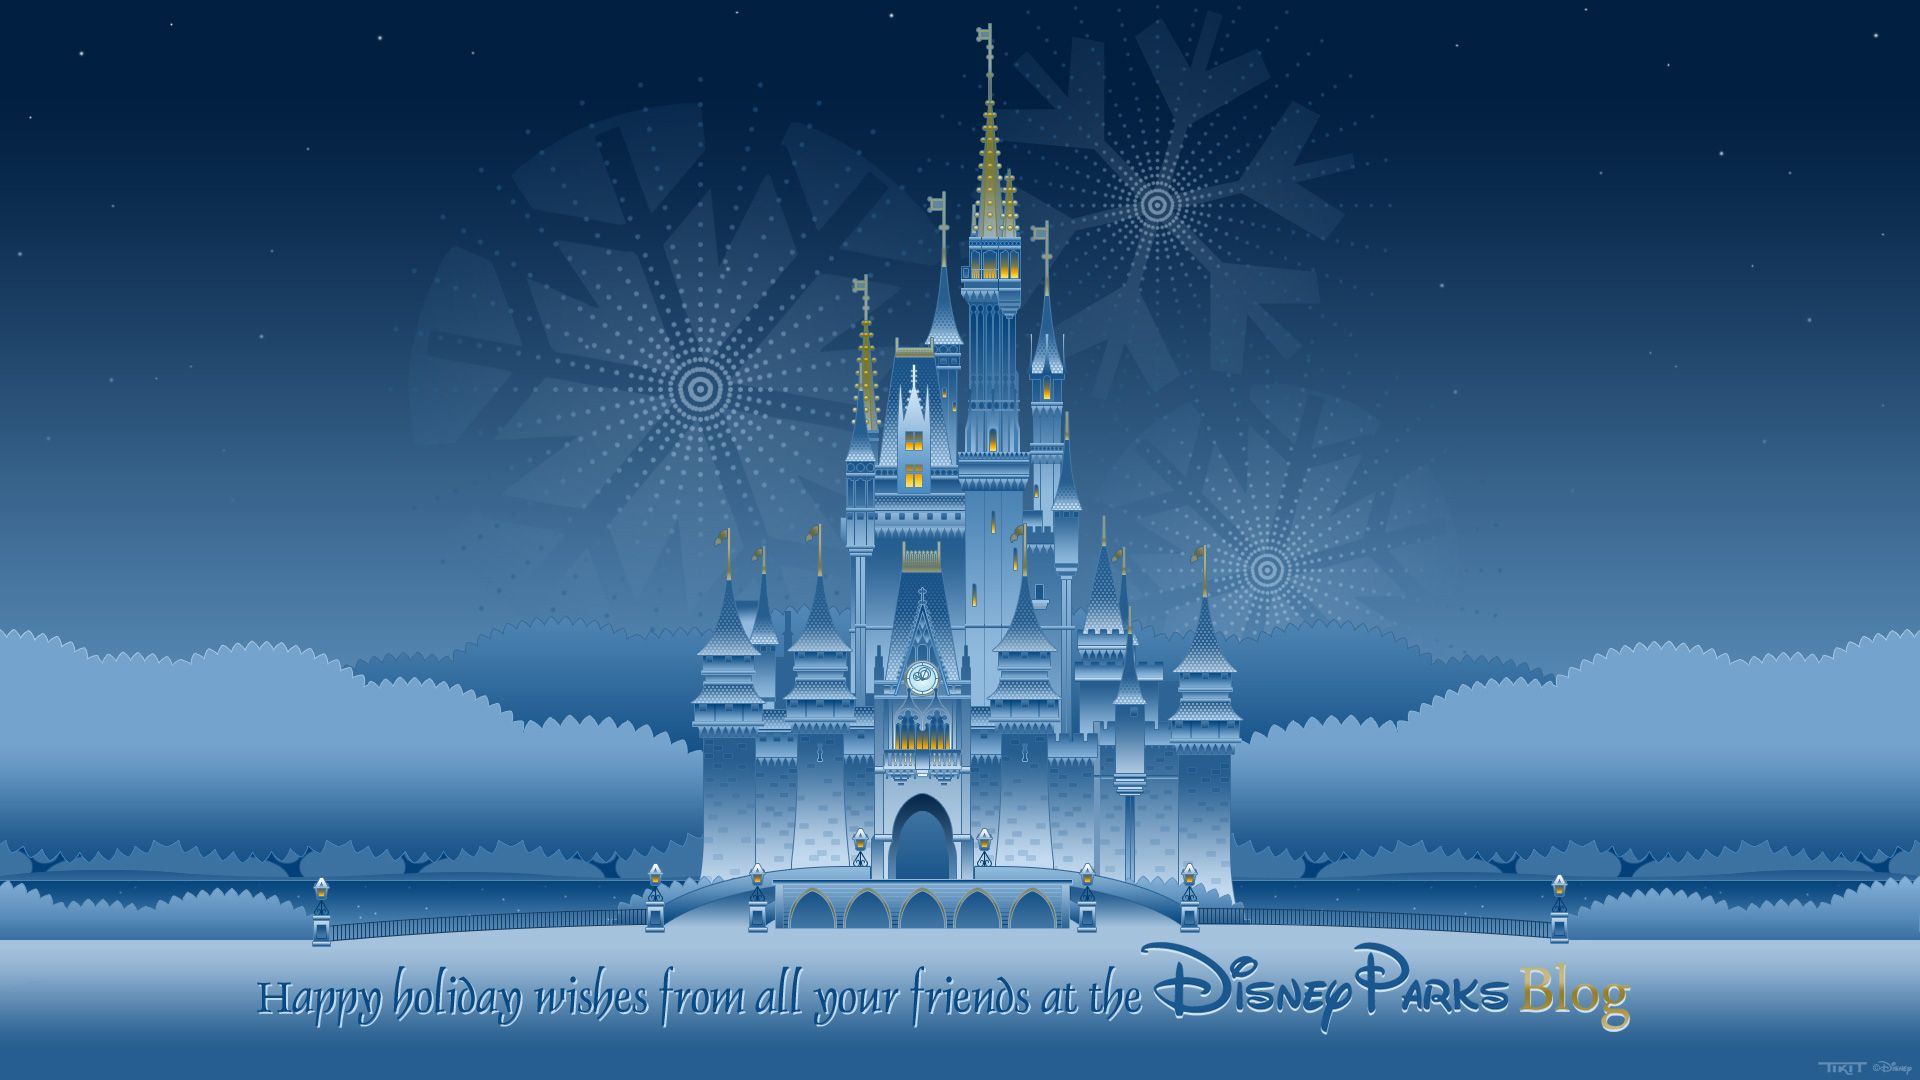 Top 11 Disney Parks Blog Holiday Wallpapers With Images Disney